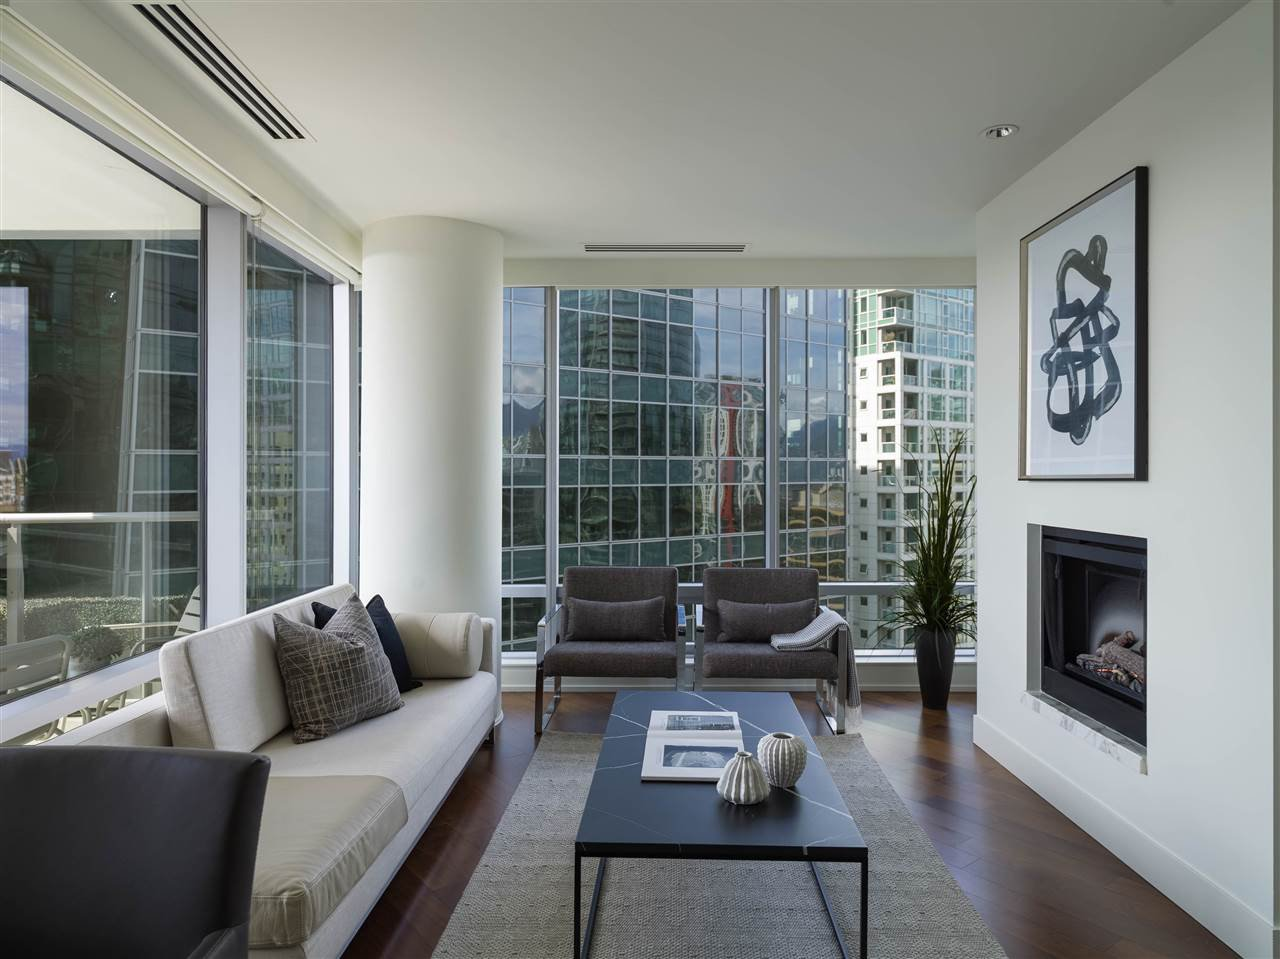 Main Photo: 2308 1111 ALBERNI STREET in Vancouver: West End VW Condo for sale (Vancouver West)  : MLS®# R2483194